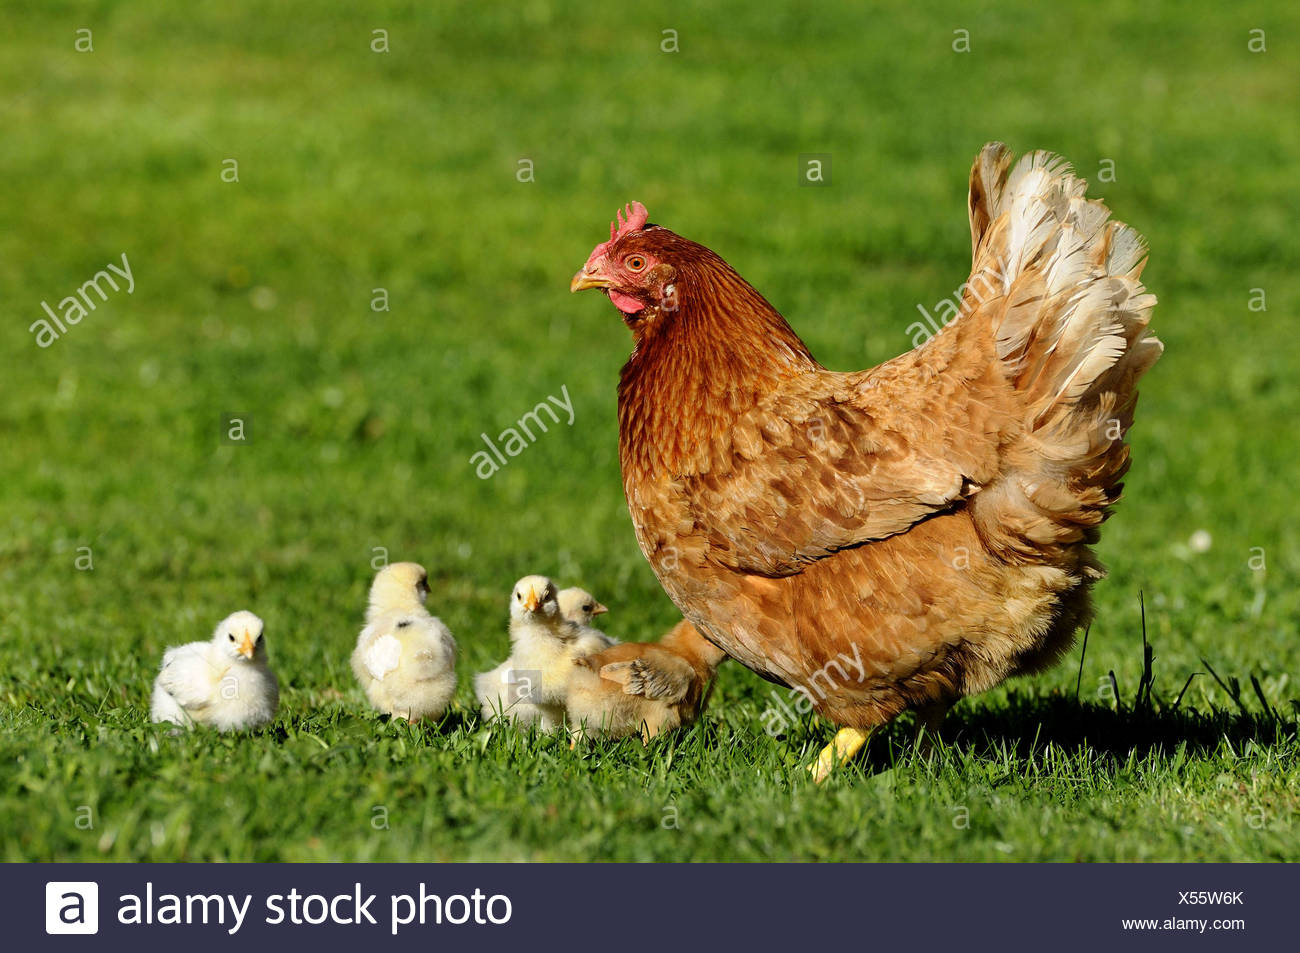 Hen Chicks Meadow Stock Photos Hen Chicks Meadow Stock Images Alamy